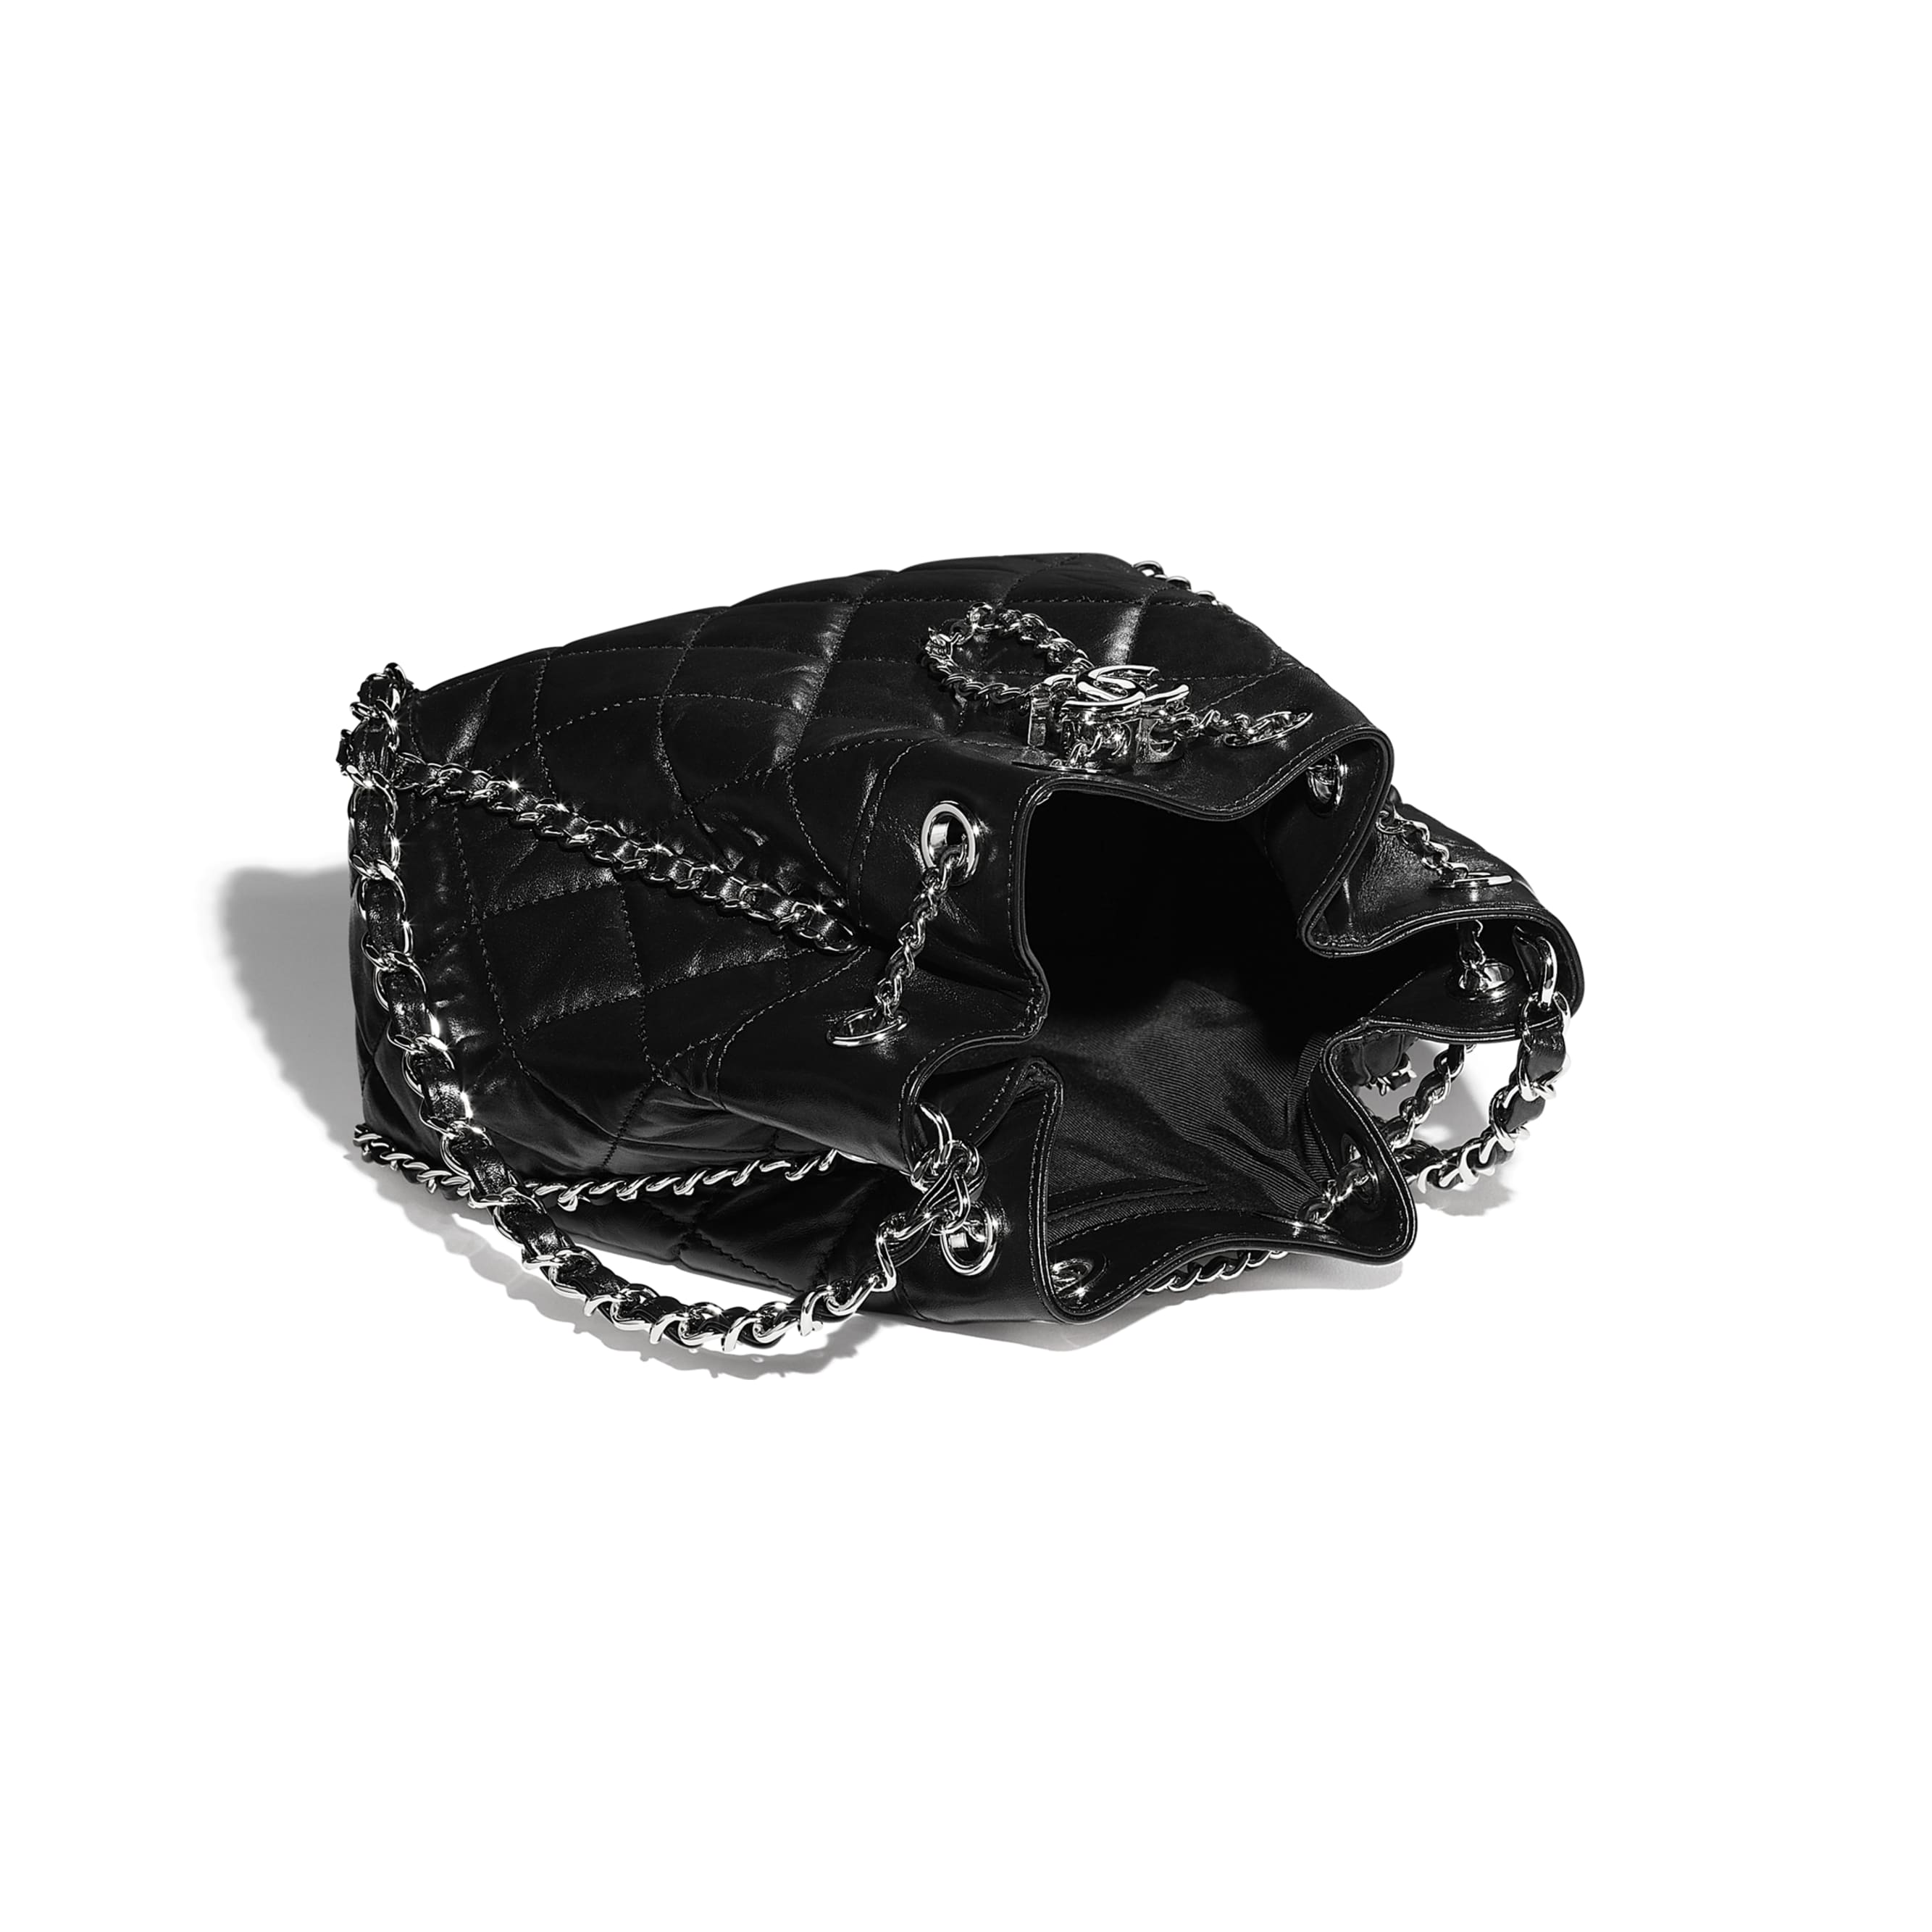 Drawstring Bag - Black - Aged Calfskin & Silver-Tone Metal - CHANEL - Other view - see standard sized version